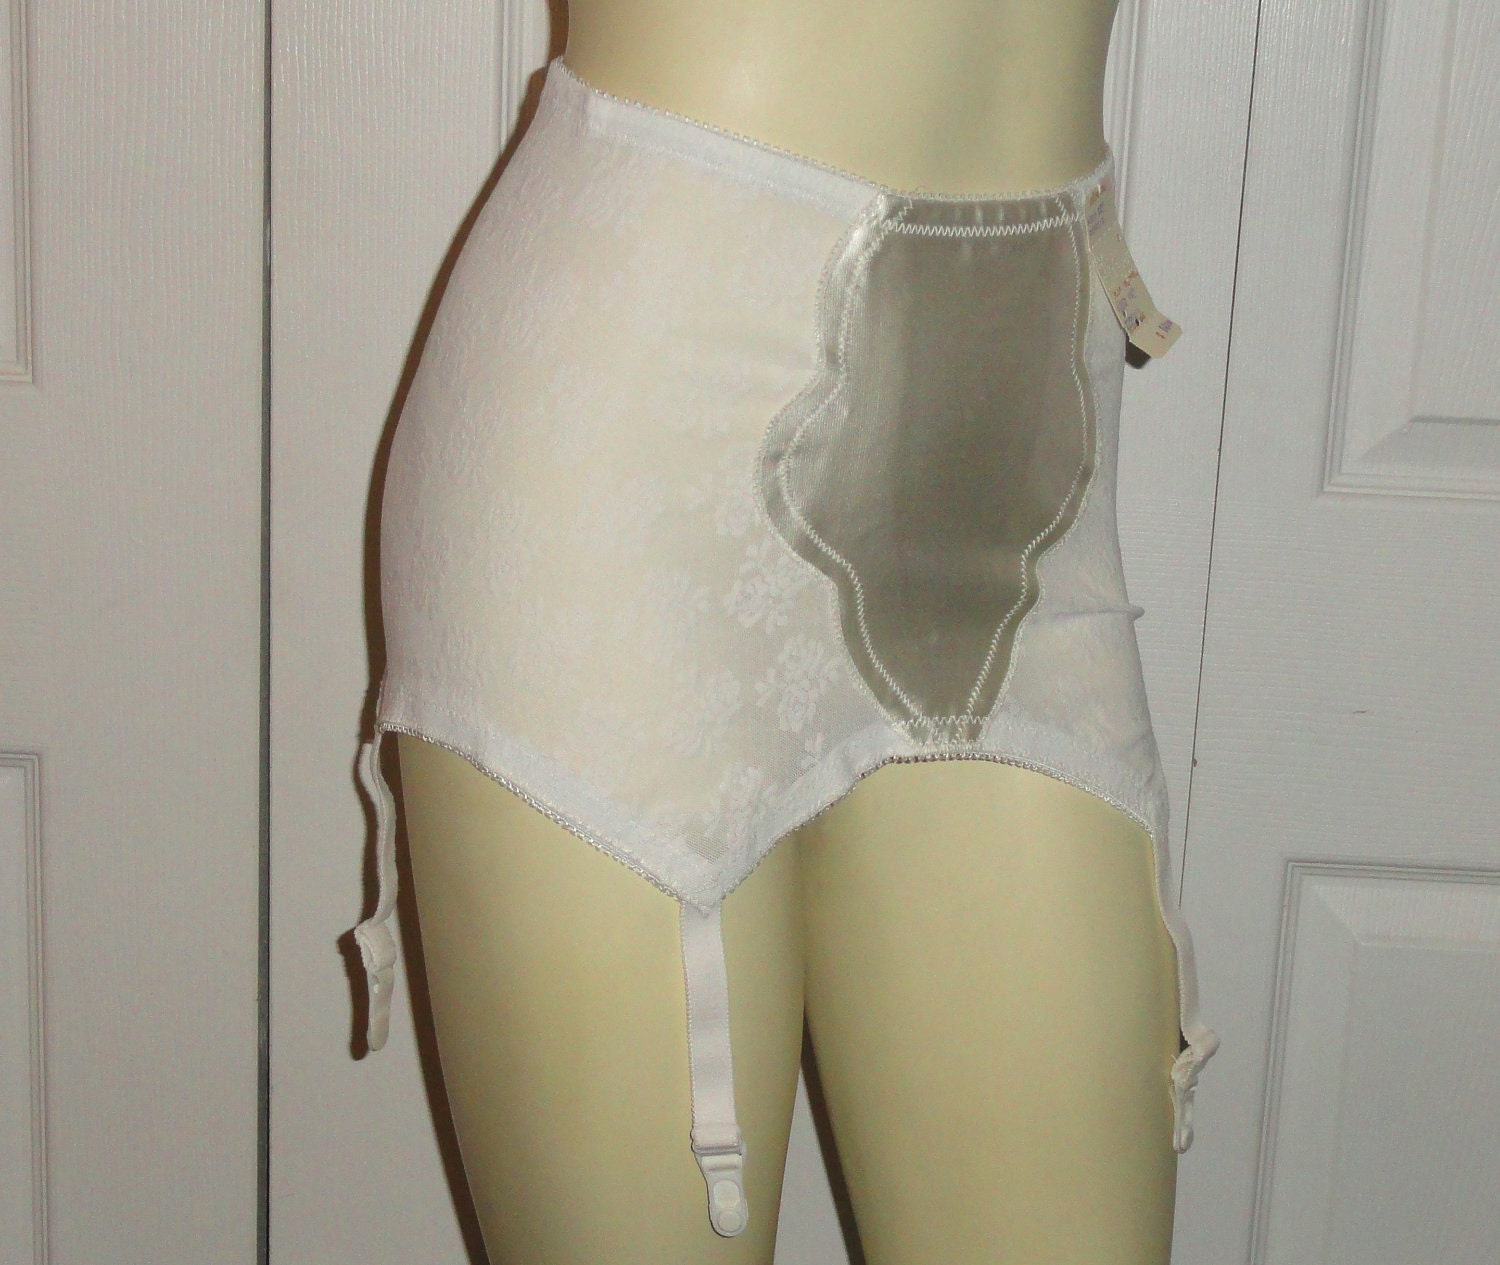 CLOTHING SALE Vintage Girdle Garter Belt By